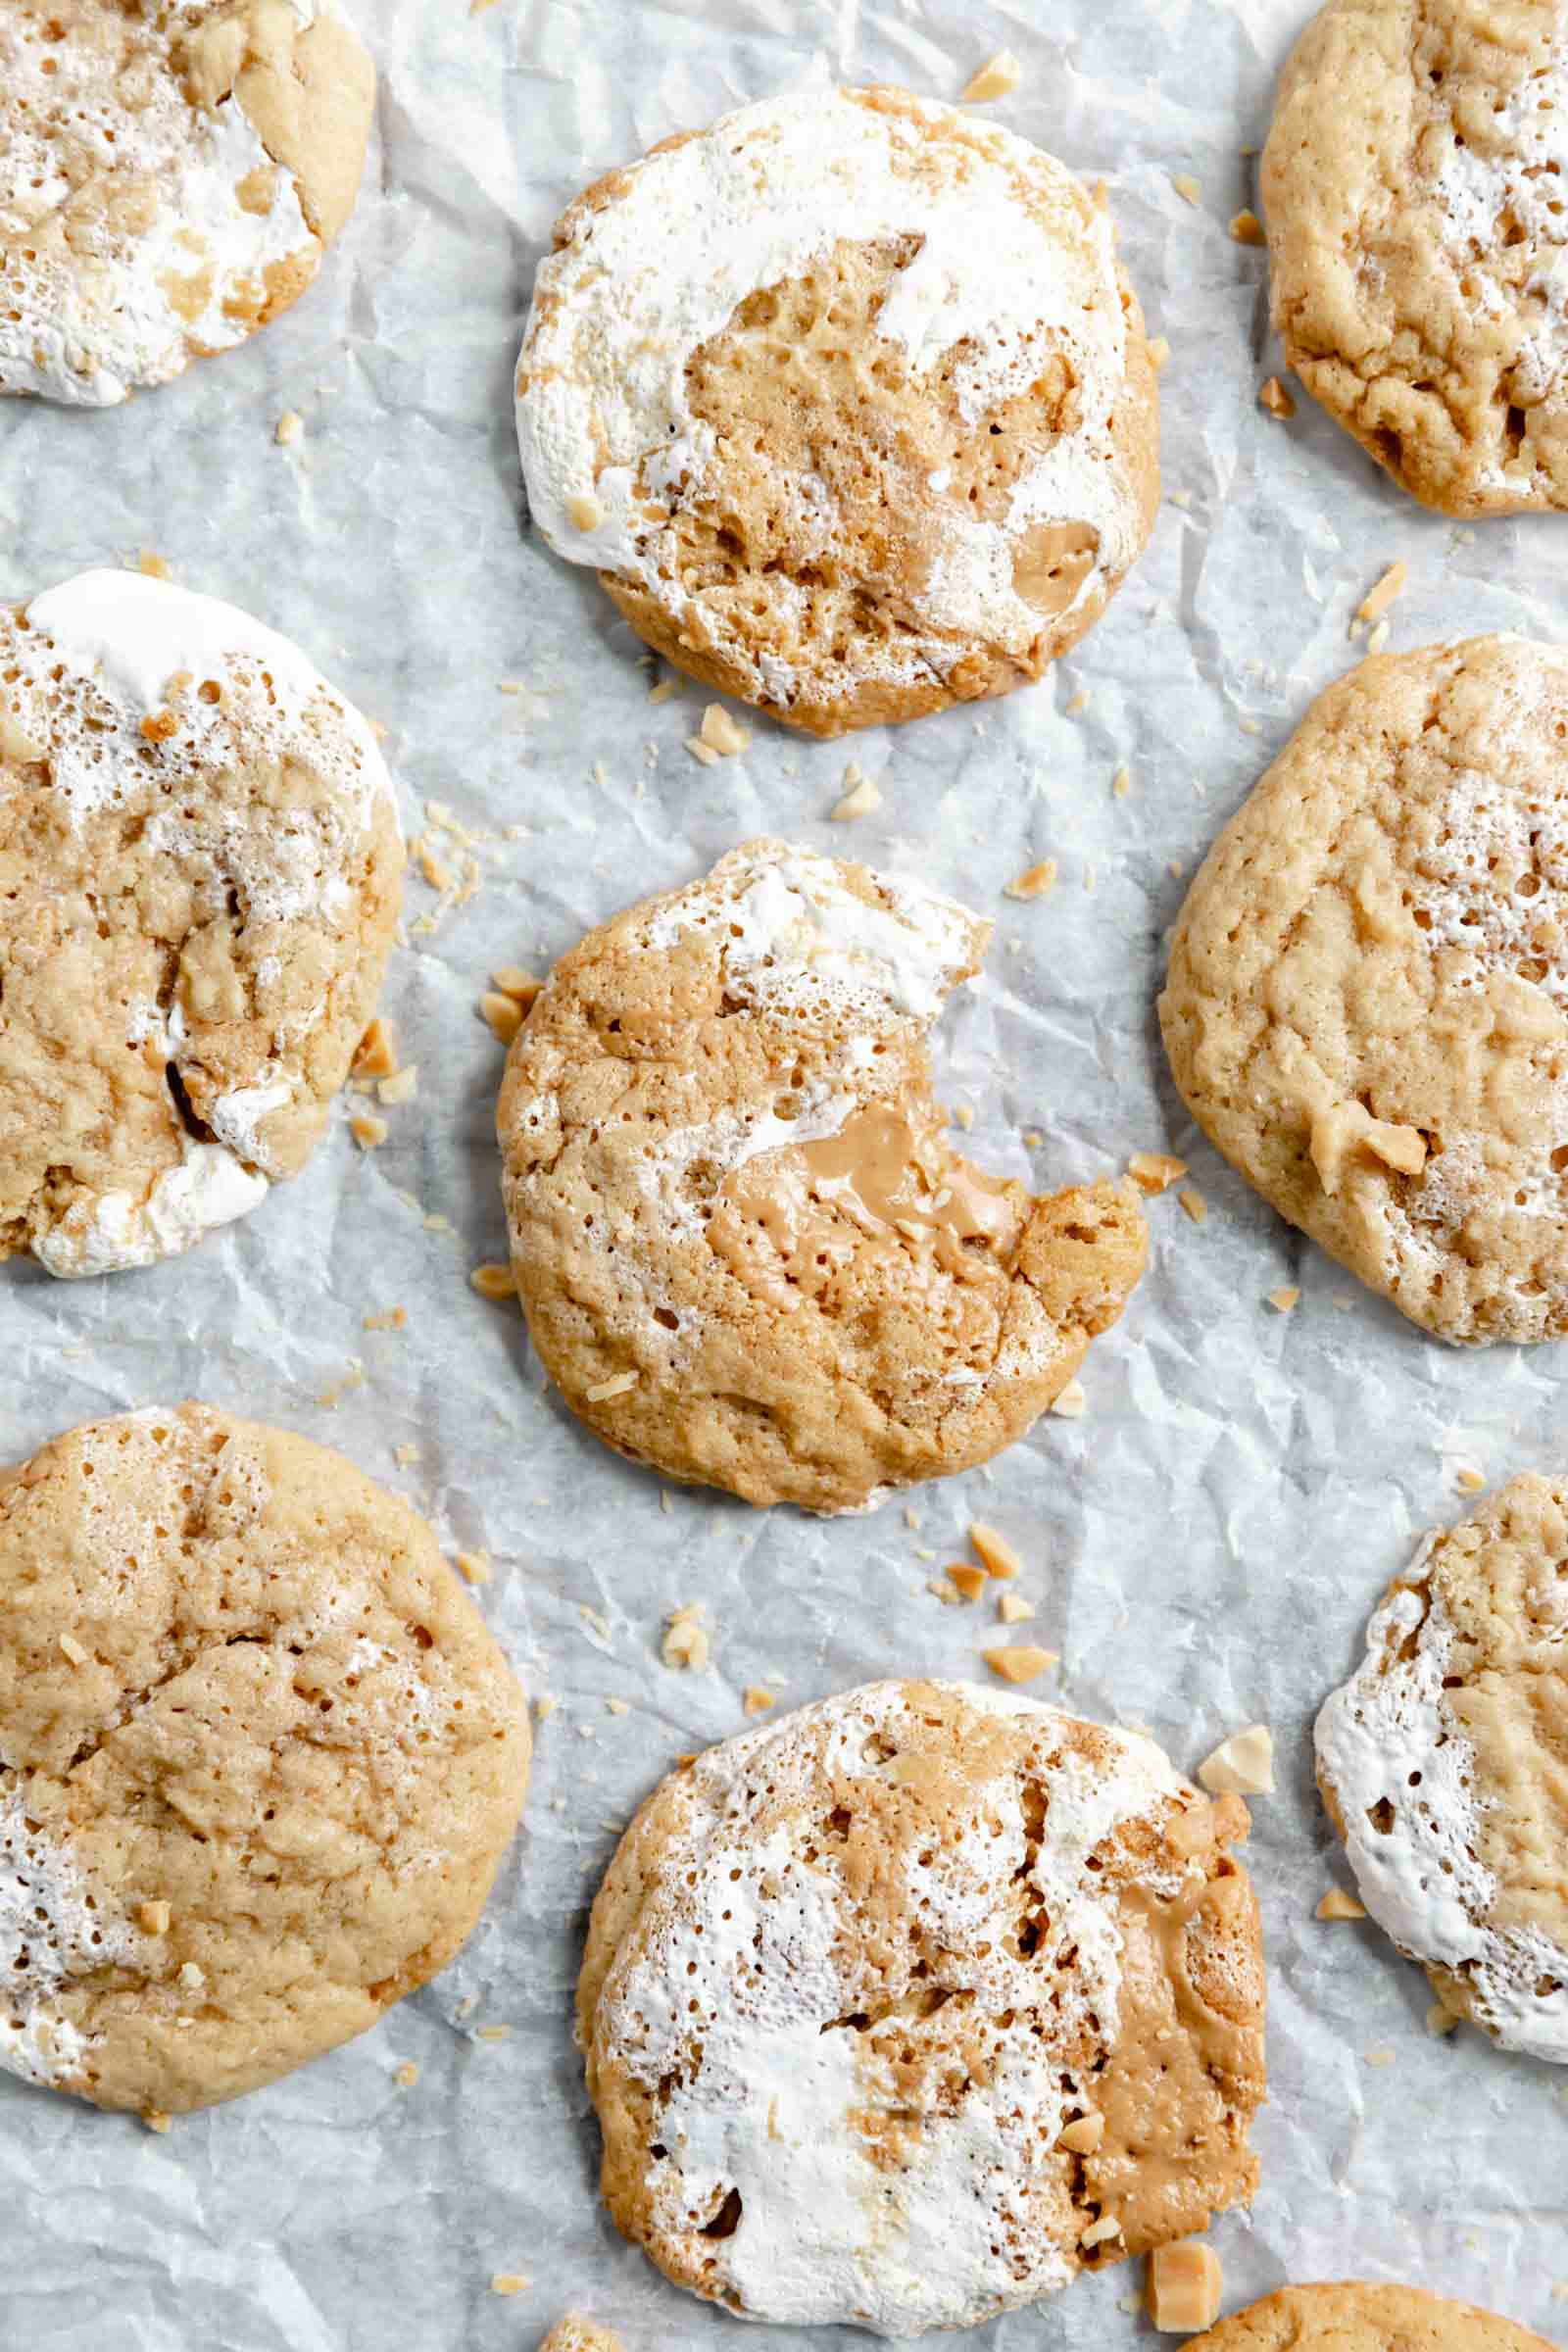 fluffernutter cookies aka thick cookies swirled with peanut butter and marshmallow fluff